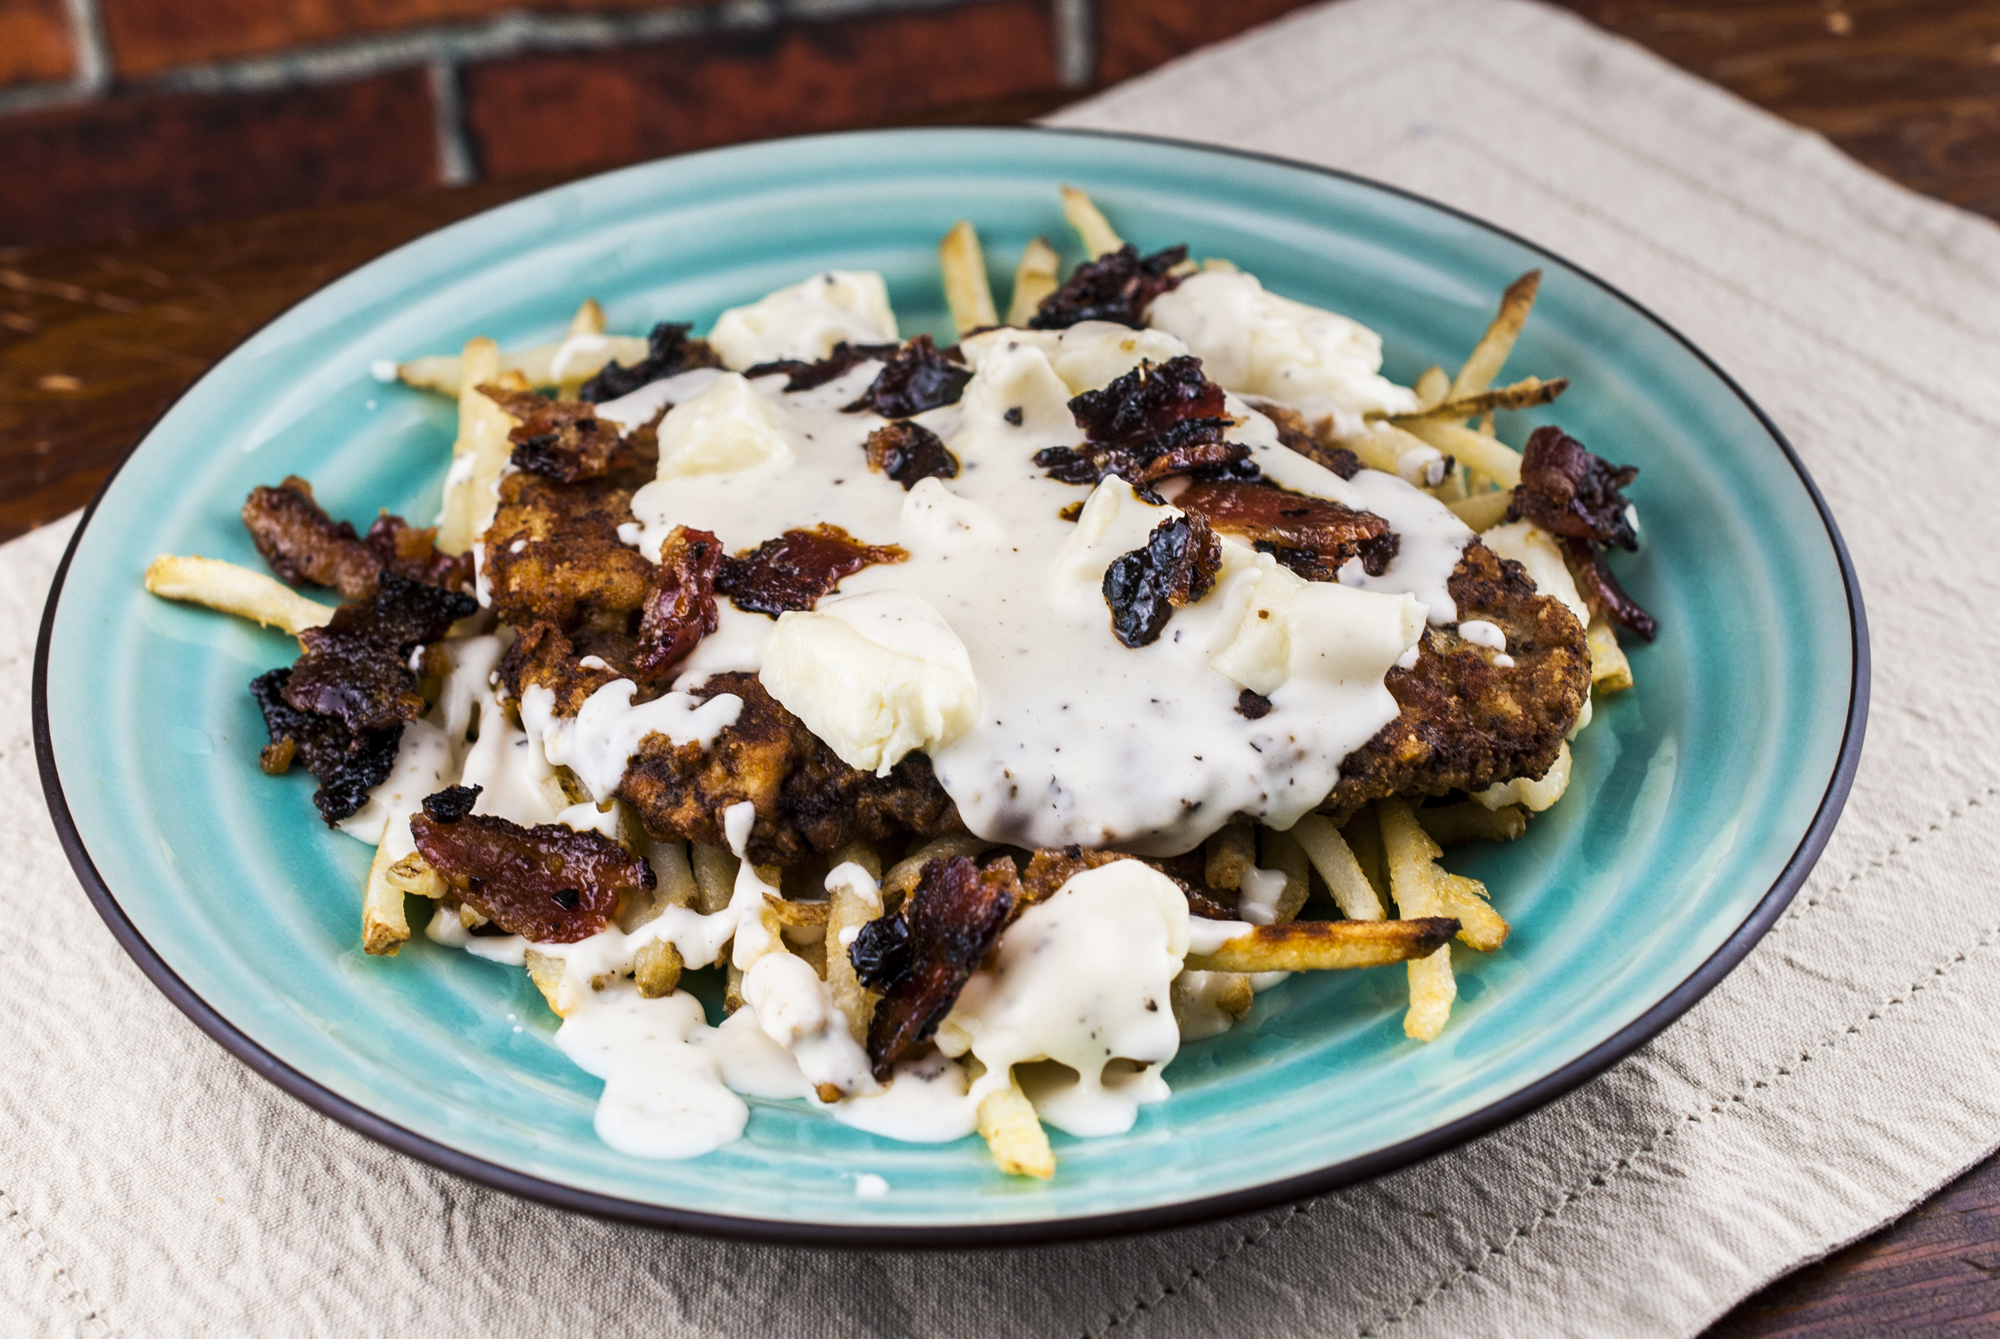 Chicken Fried Steak With Cheese Curds and Maple Candied Bacon